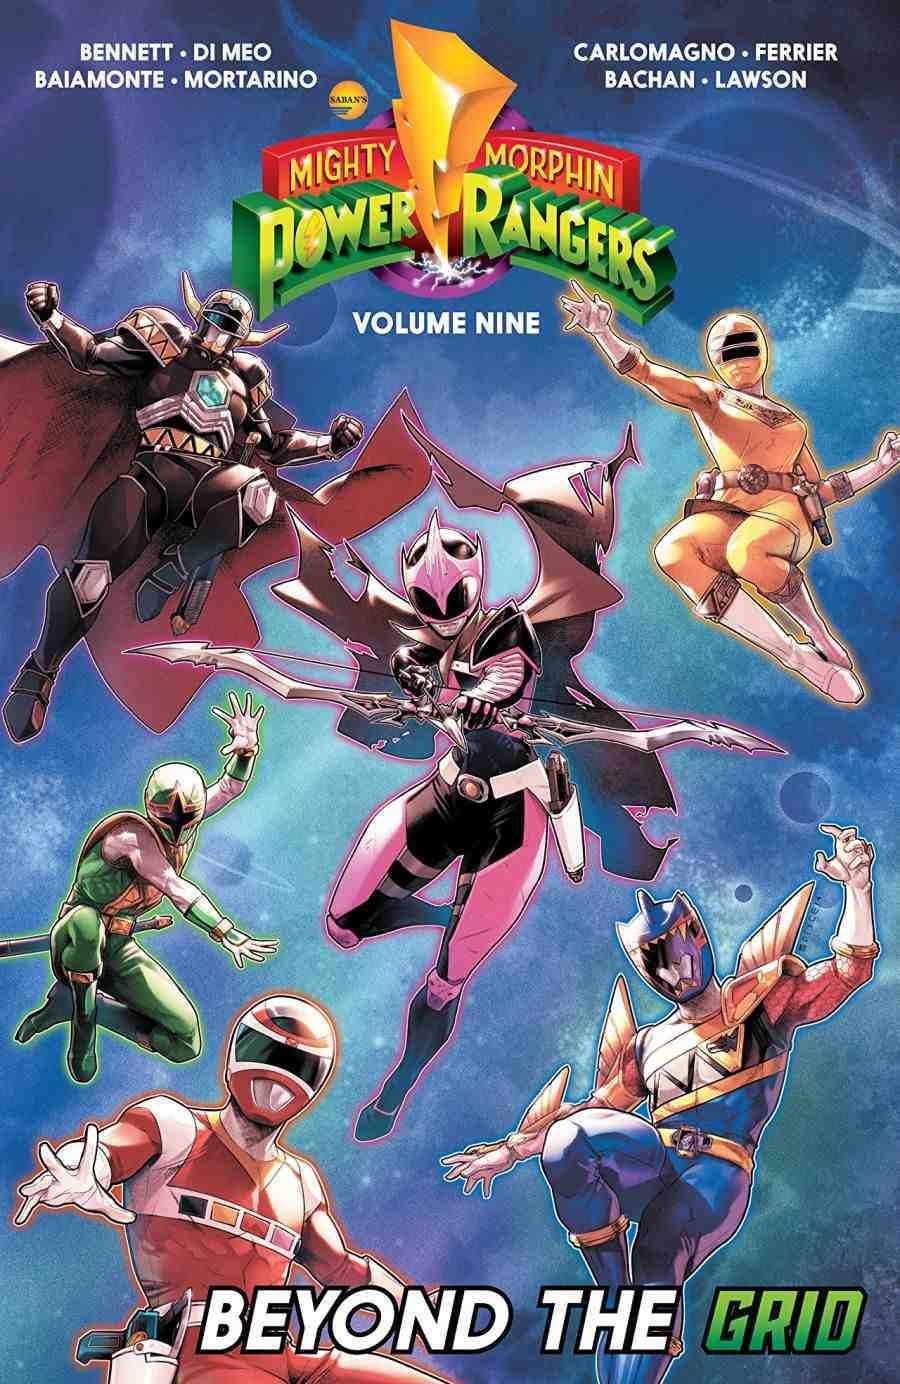 Mighty Morphin Power Ranges Vol 9